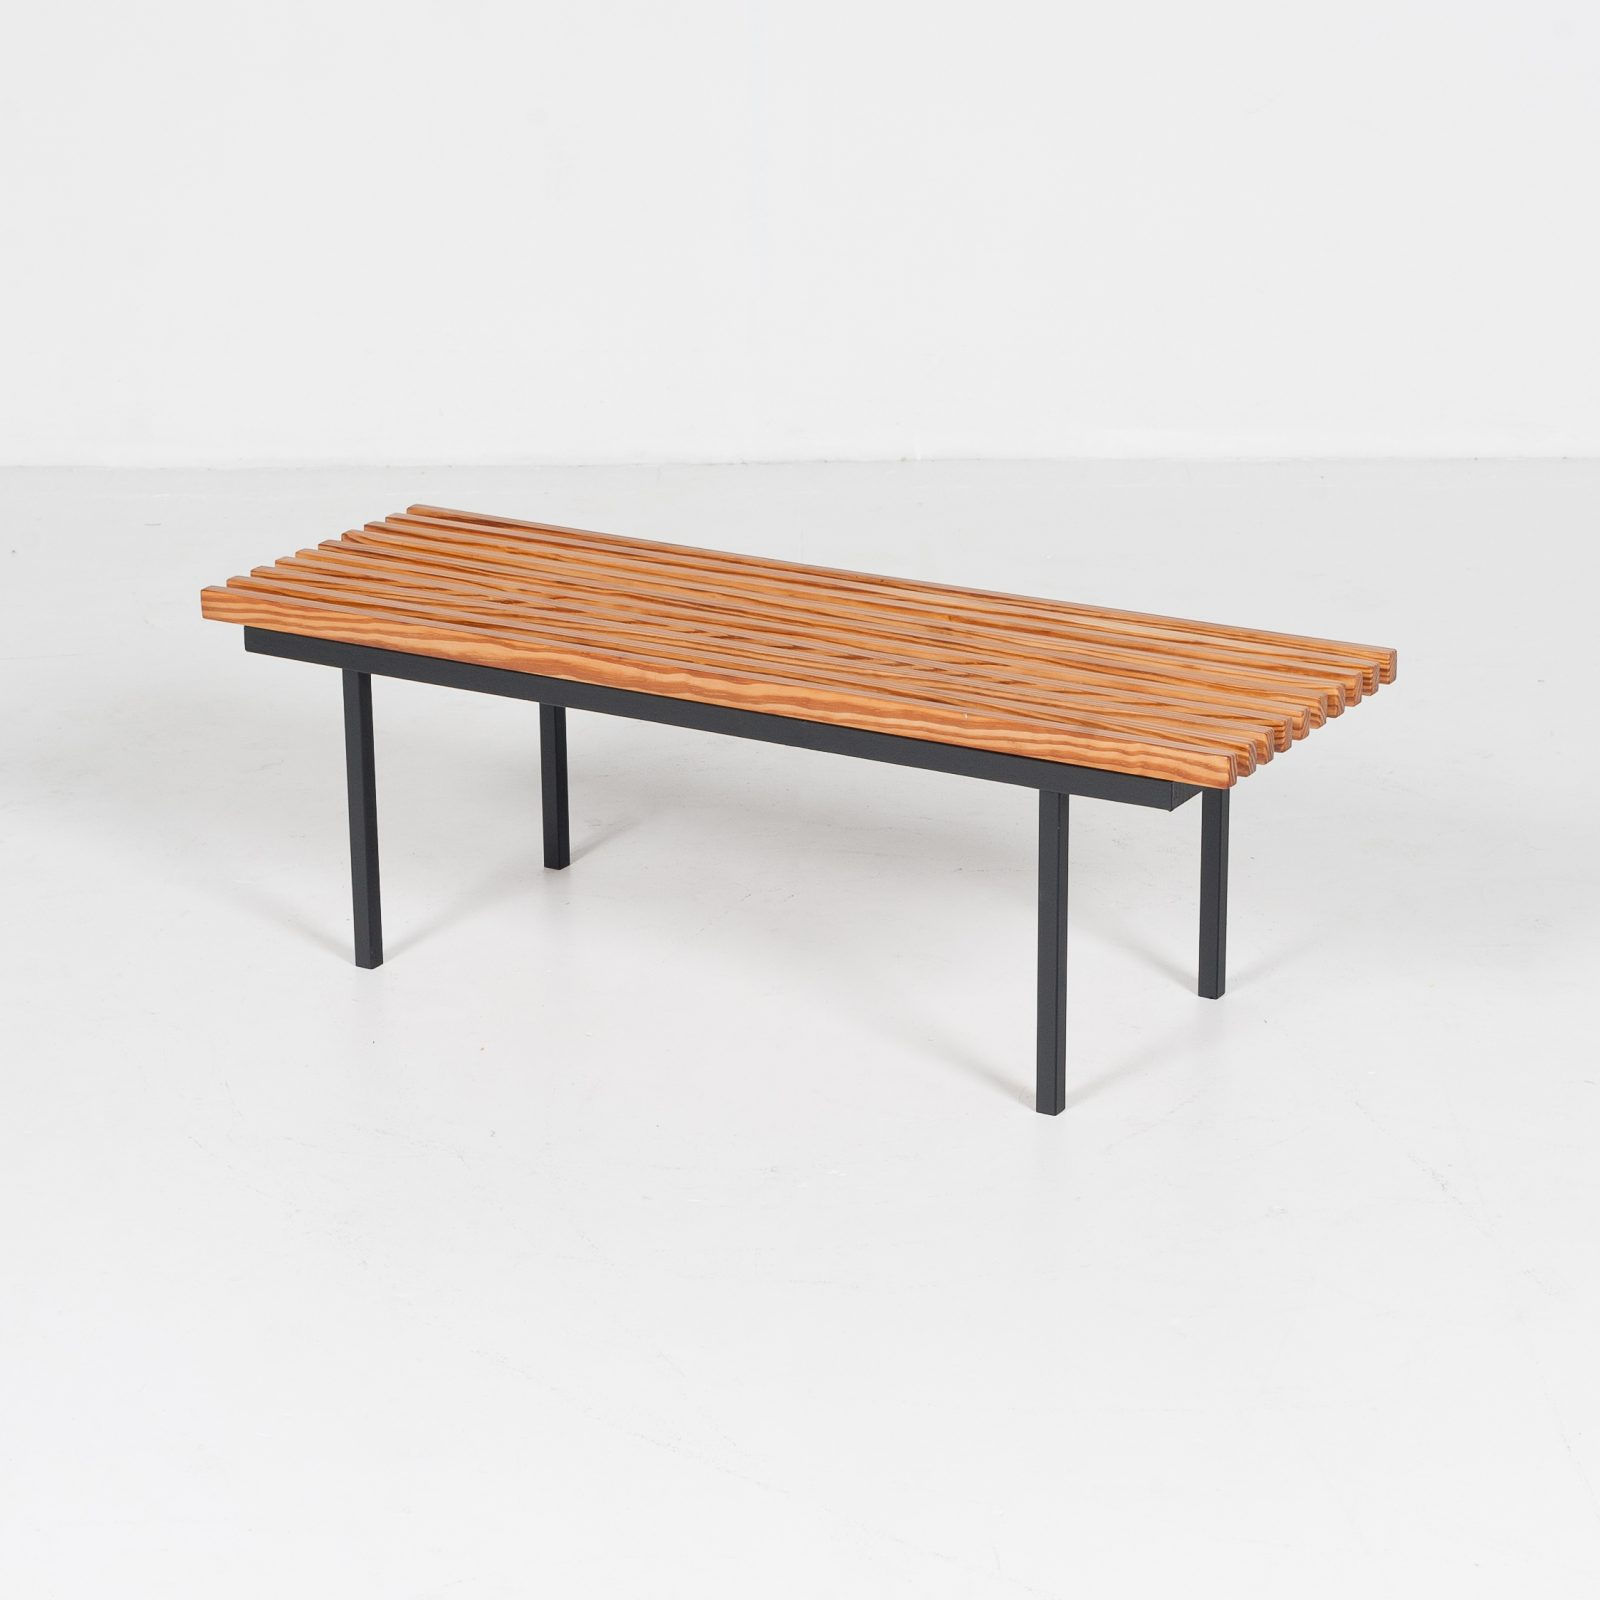 Bench In Pine And Steel, 1950s, The Netherlands 10